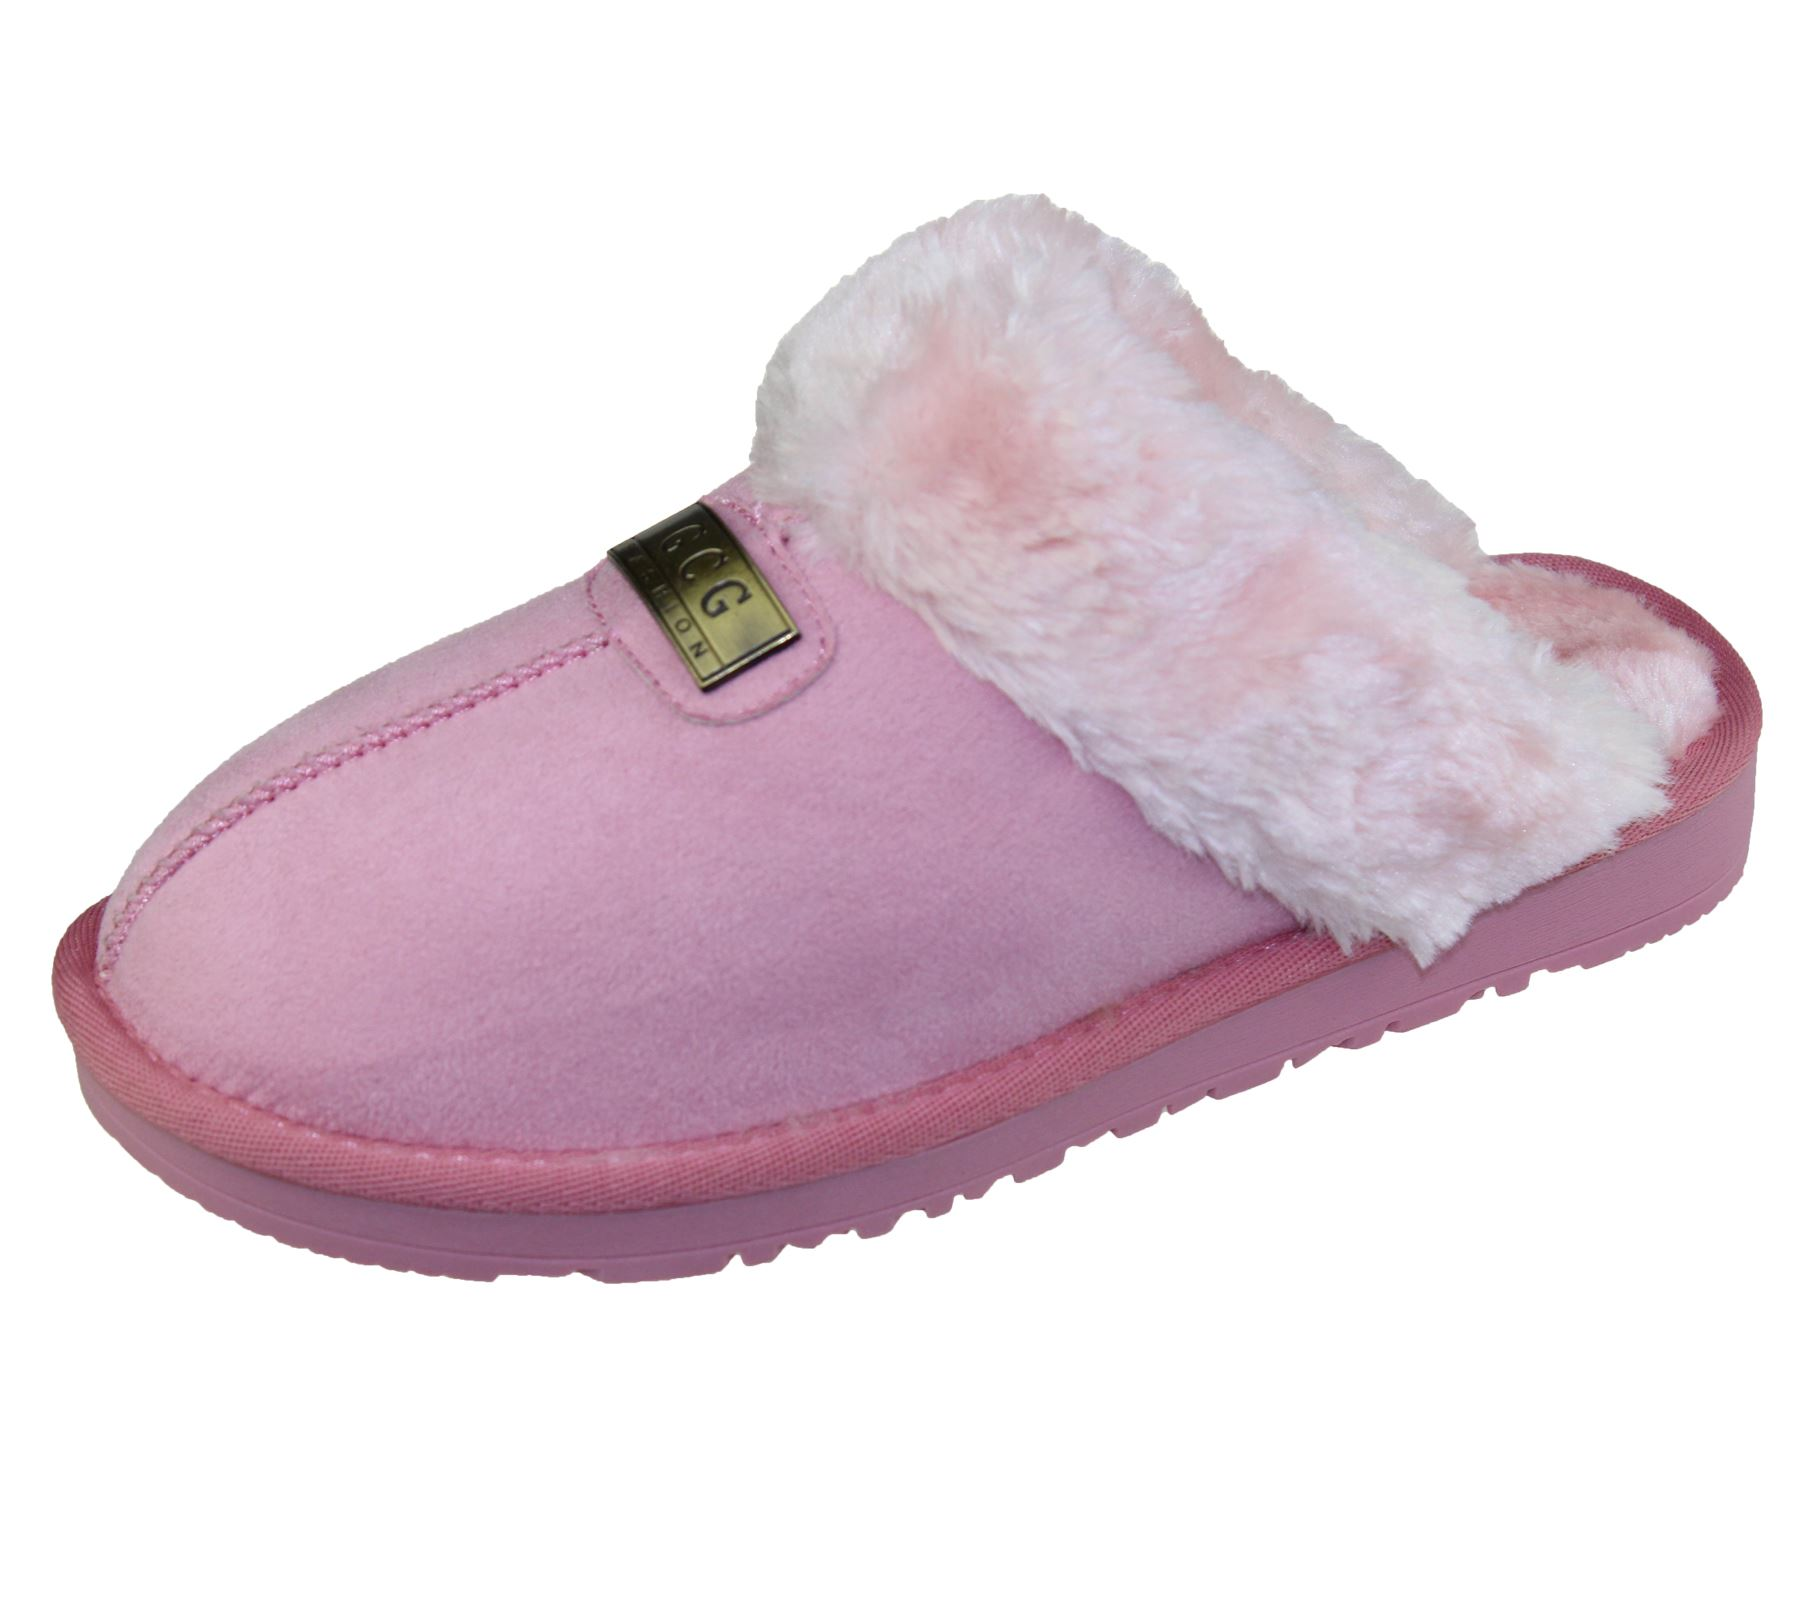 Womens-Fur-Lined-Slippers-Ladies-Mules-Non-Slip-Rubber-Sole-Shoes miniatura 29